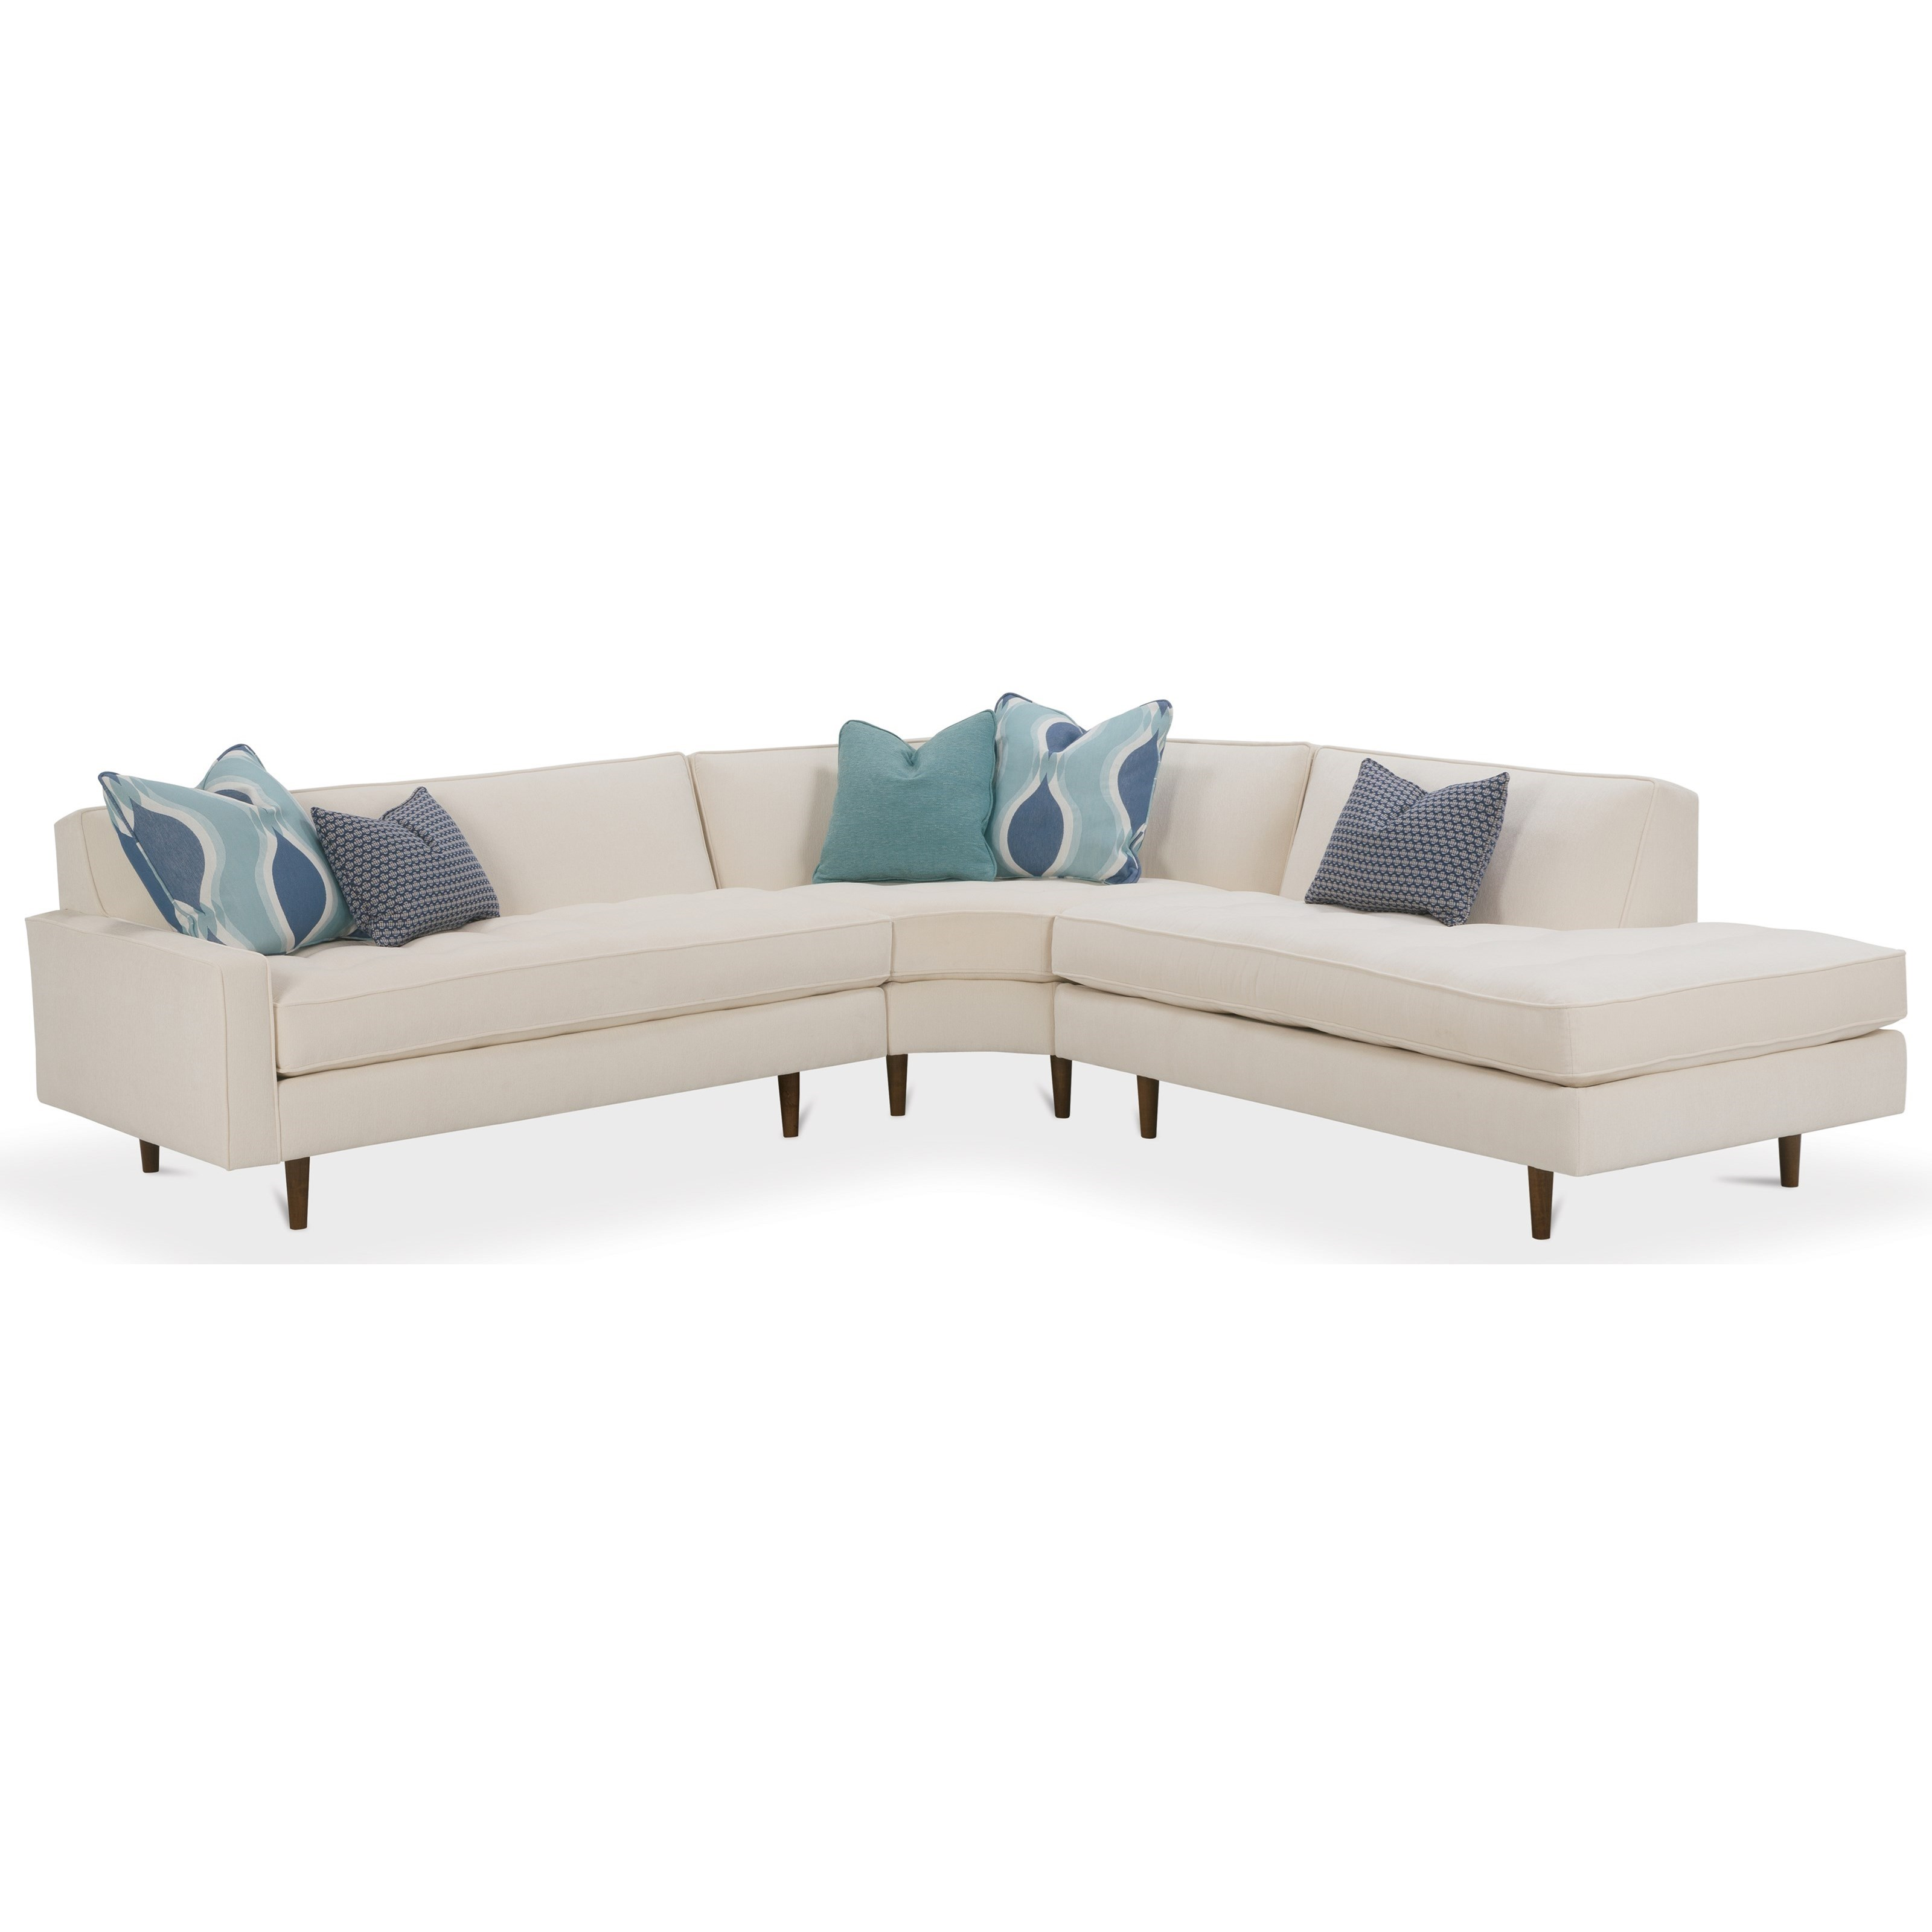 Rowe Brady Contemporary 3 Piece Sectional Sofa Becker Furniture